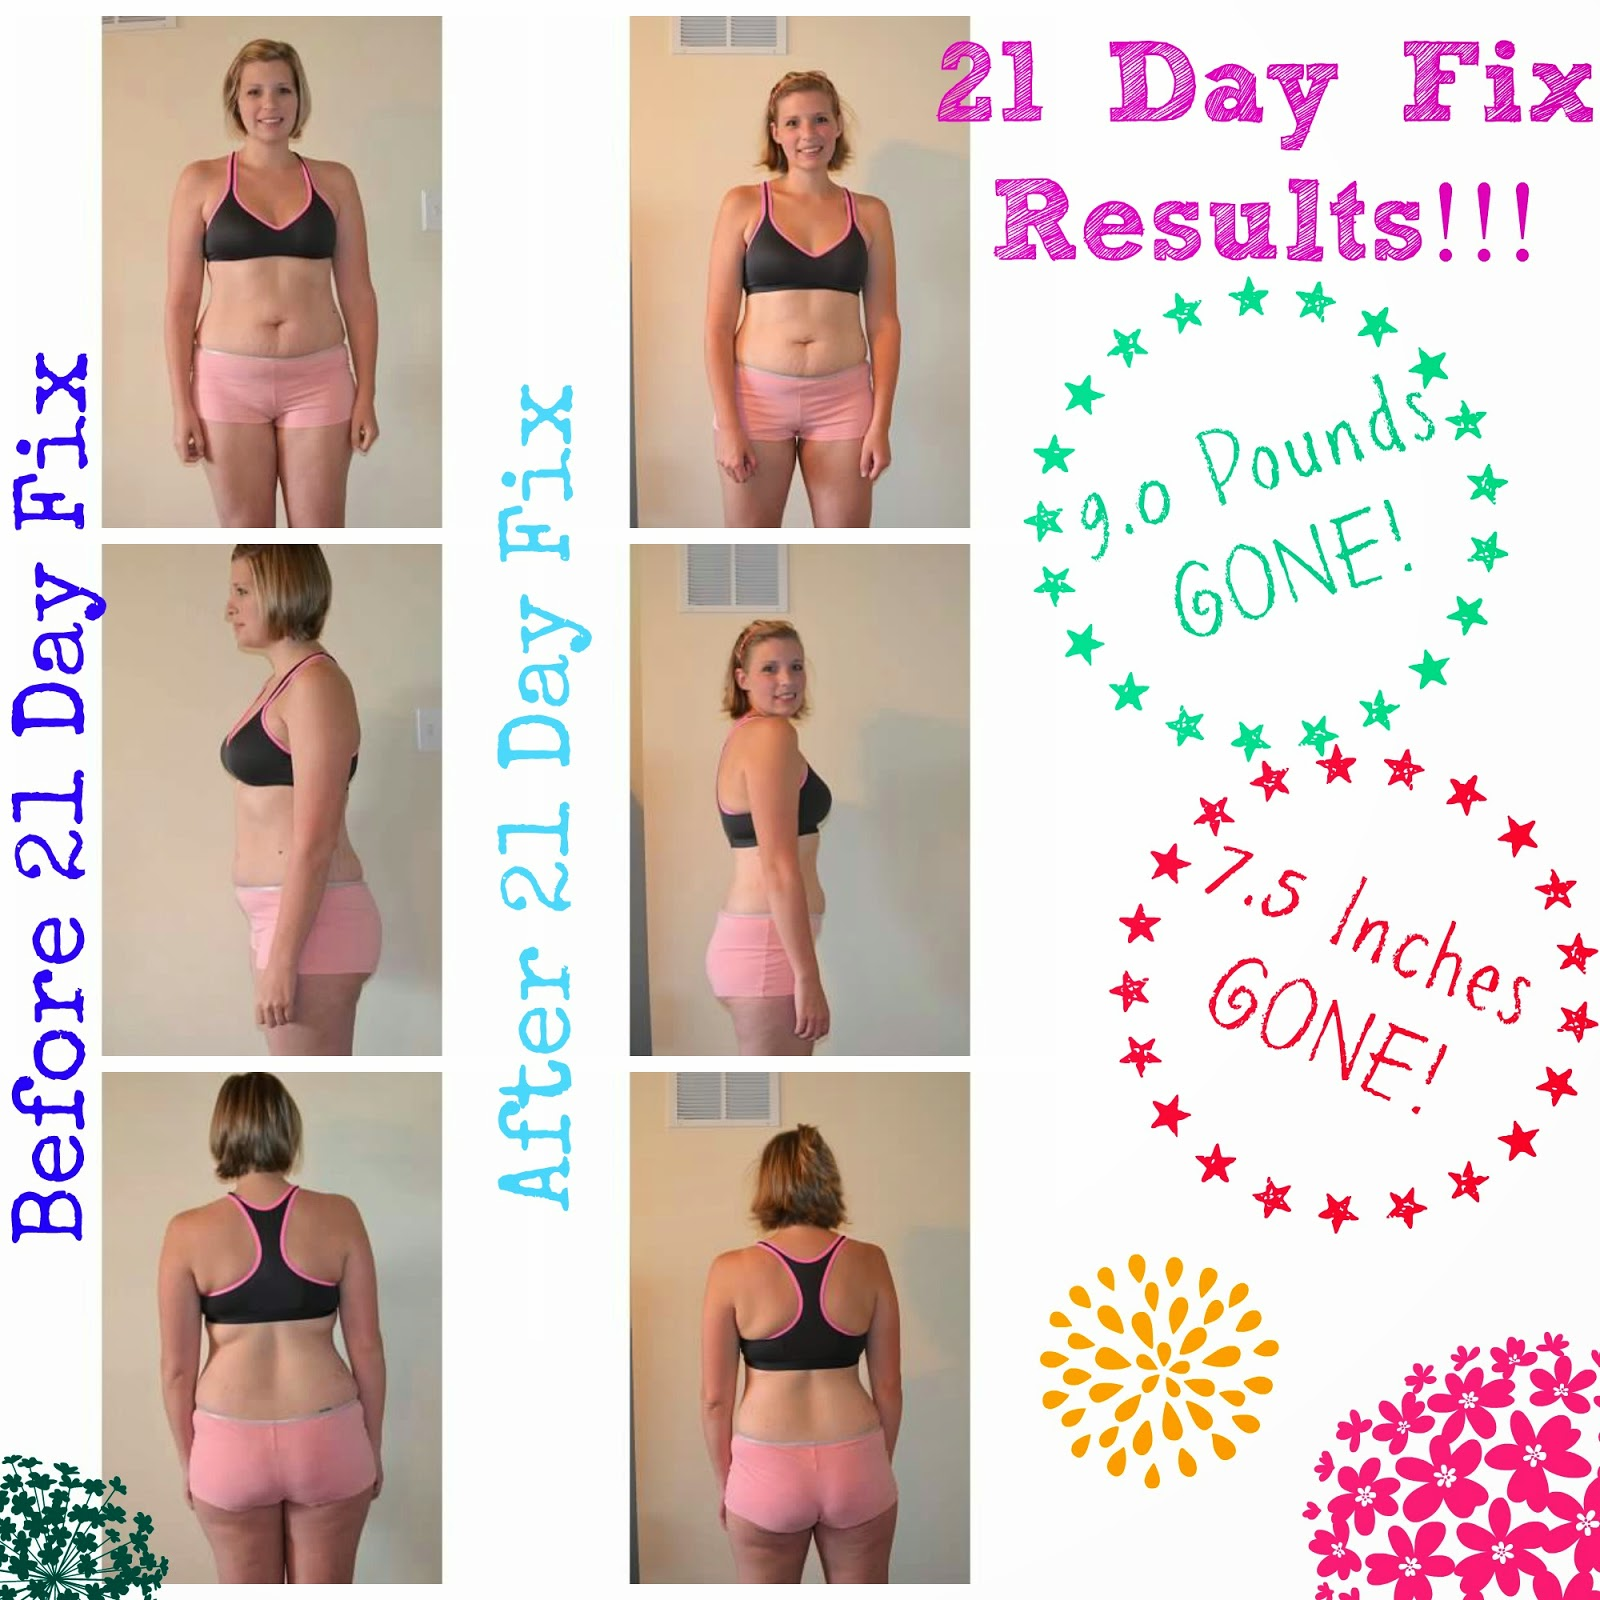 Erin Traill, Diamond Coach, Beachbody, 21 Day Fix, weight loss, transformation, success story, weight watchers, recipes, meal plan, clean eating, weight loss support, dramatic results, before and afters